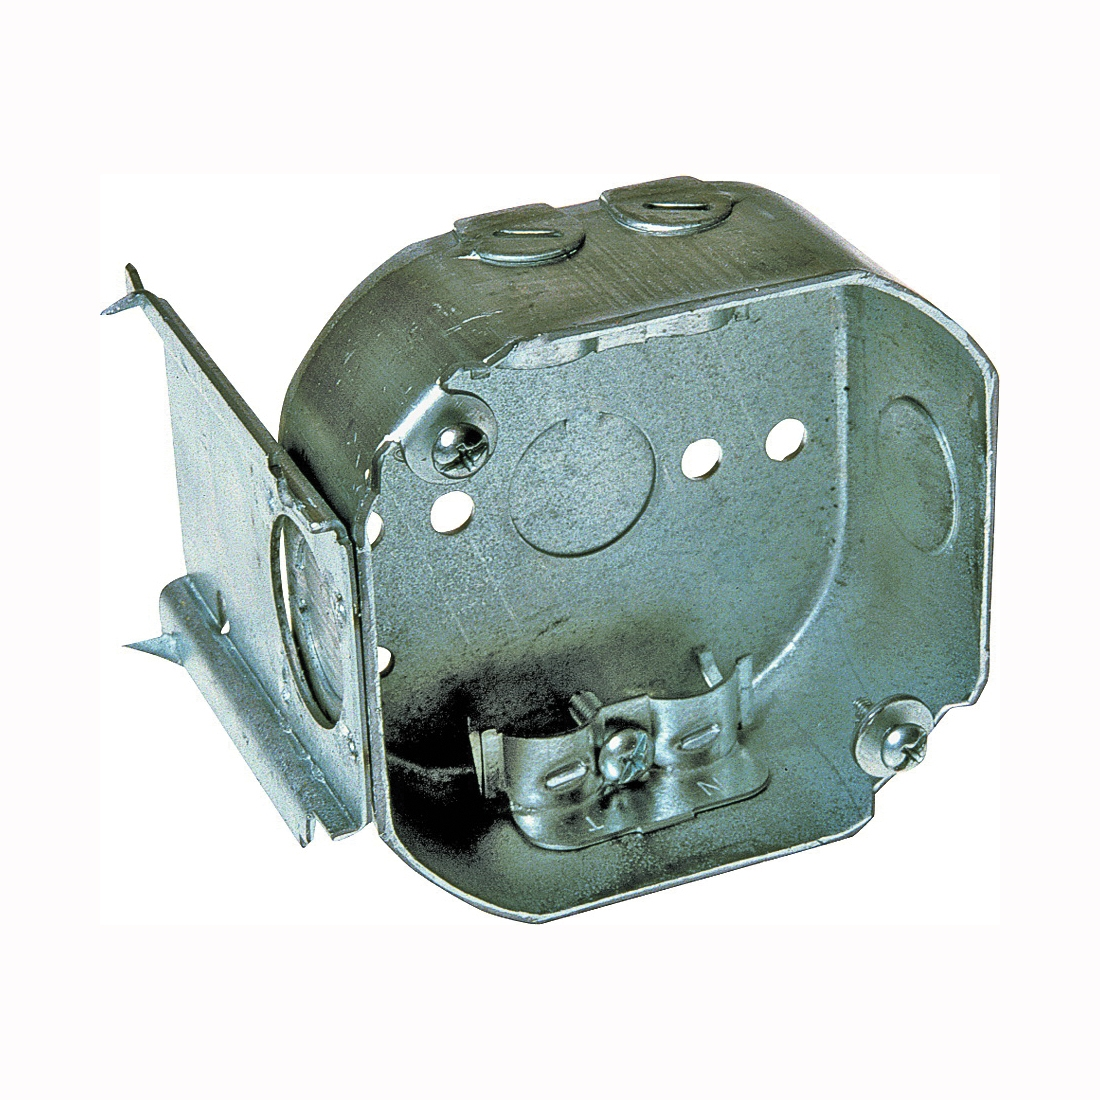 Picture of RACO 160 Octagon Box, 4.067 in OAW, 1-1/2 in OAD, 3.579 in OAH, 1-Gang, 3-Knockout, Steel Housing Material